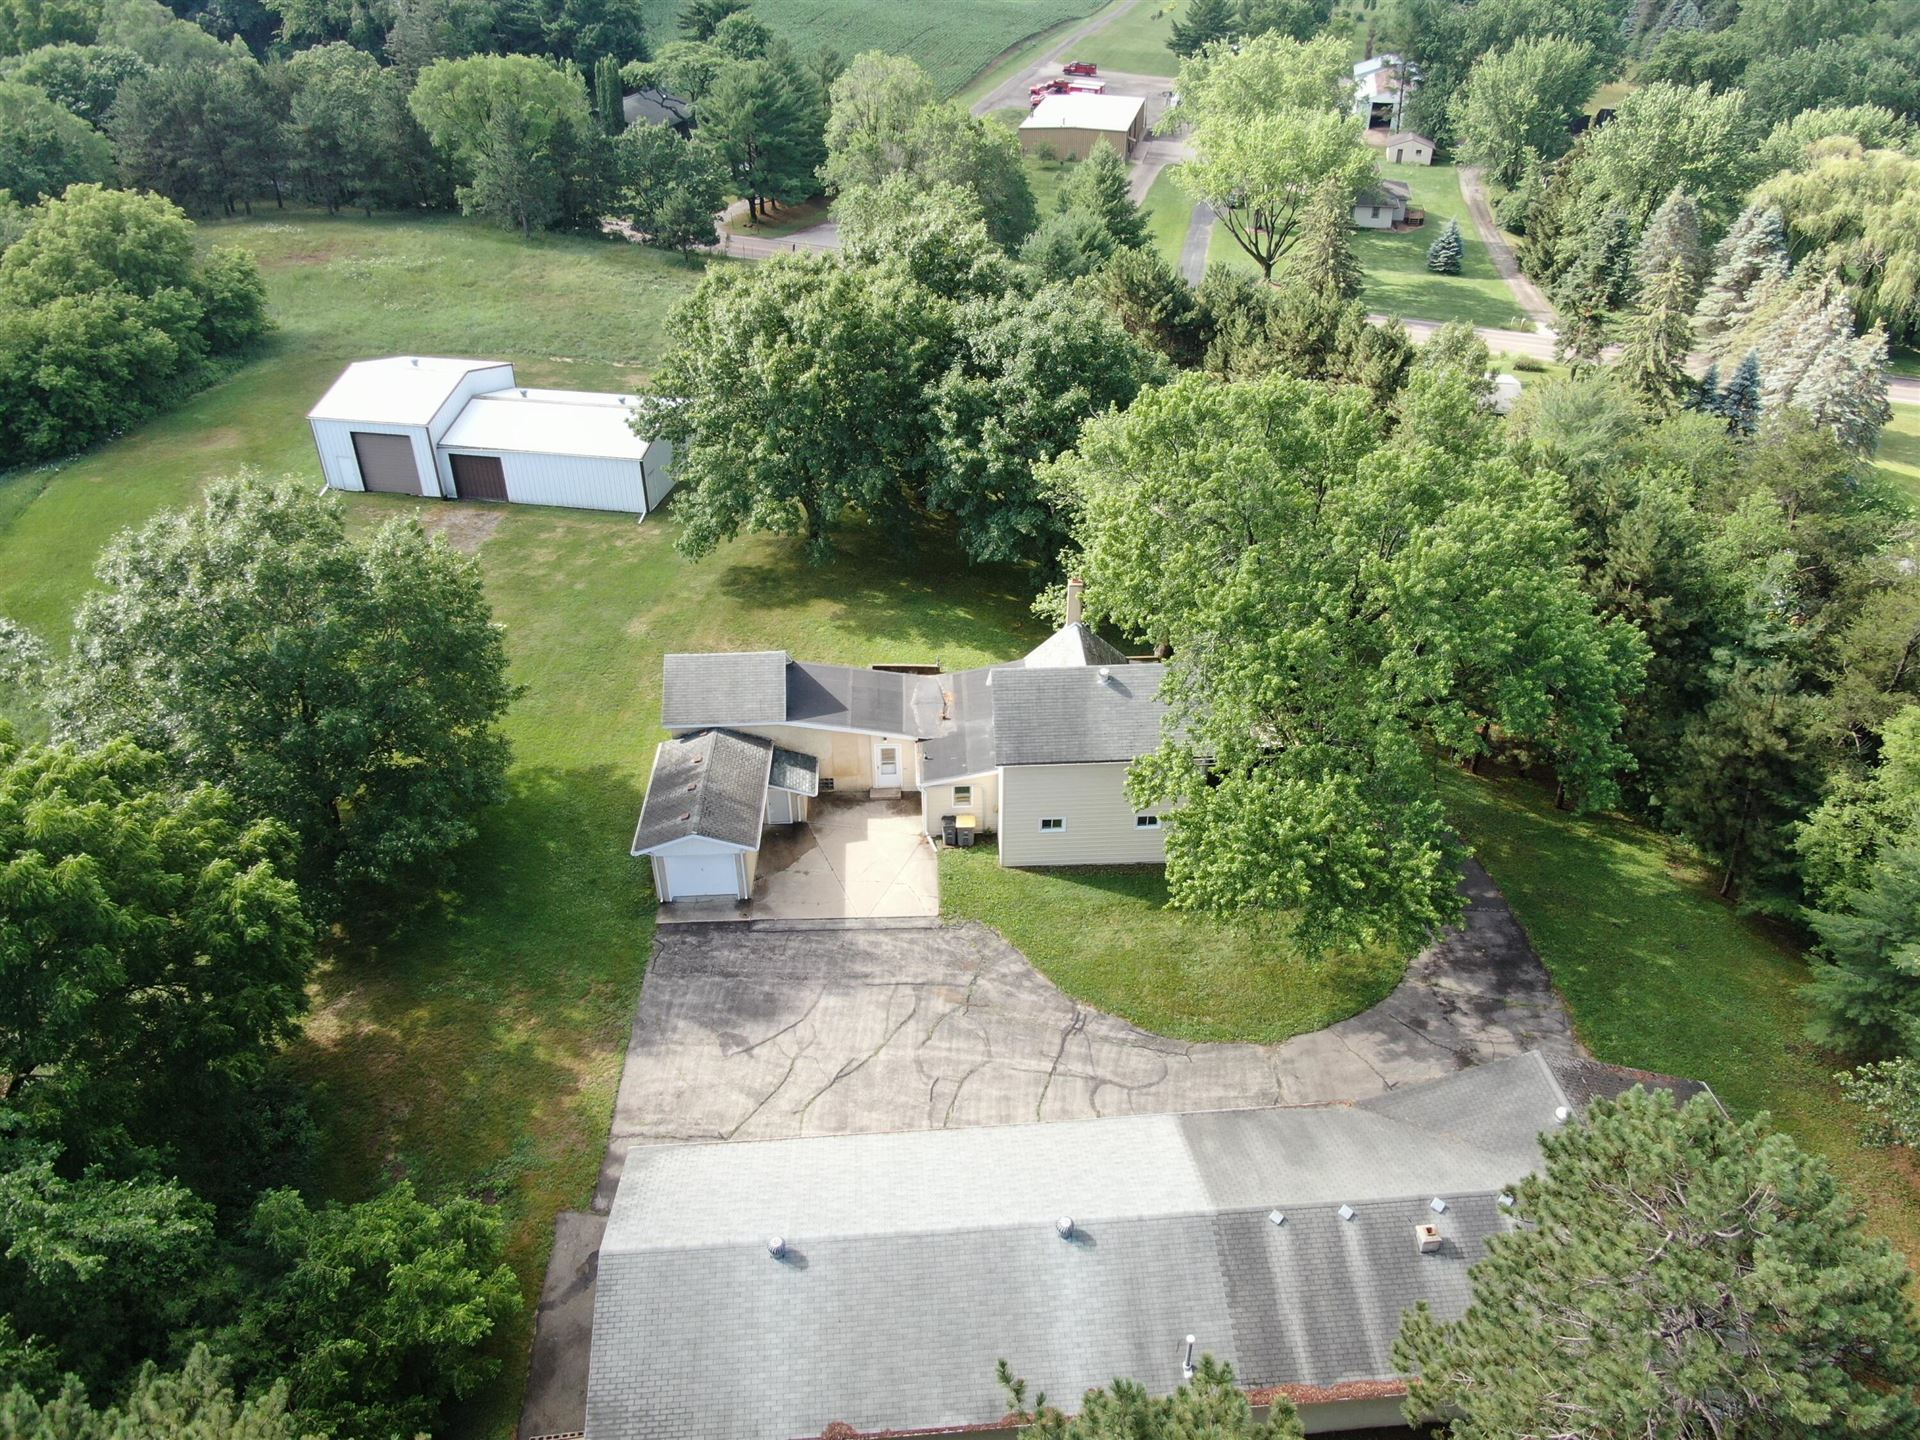 W6132 County Road S, Onalaska, WI 54650 - MLS#: 1720147